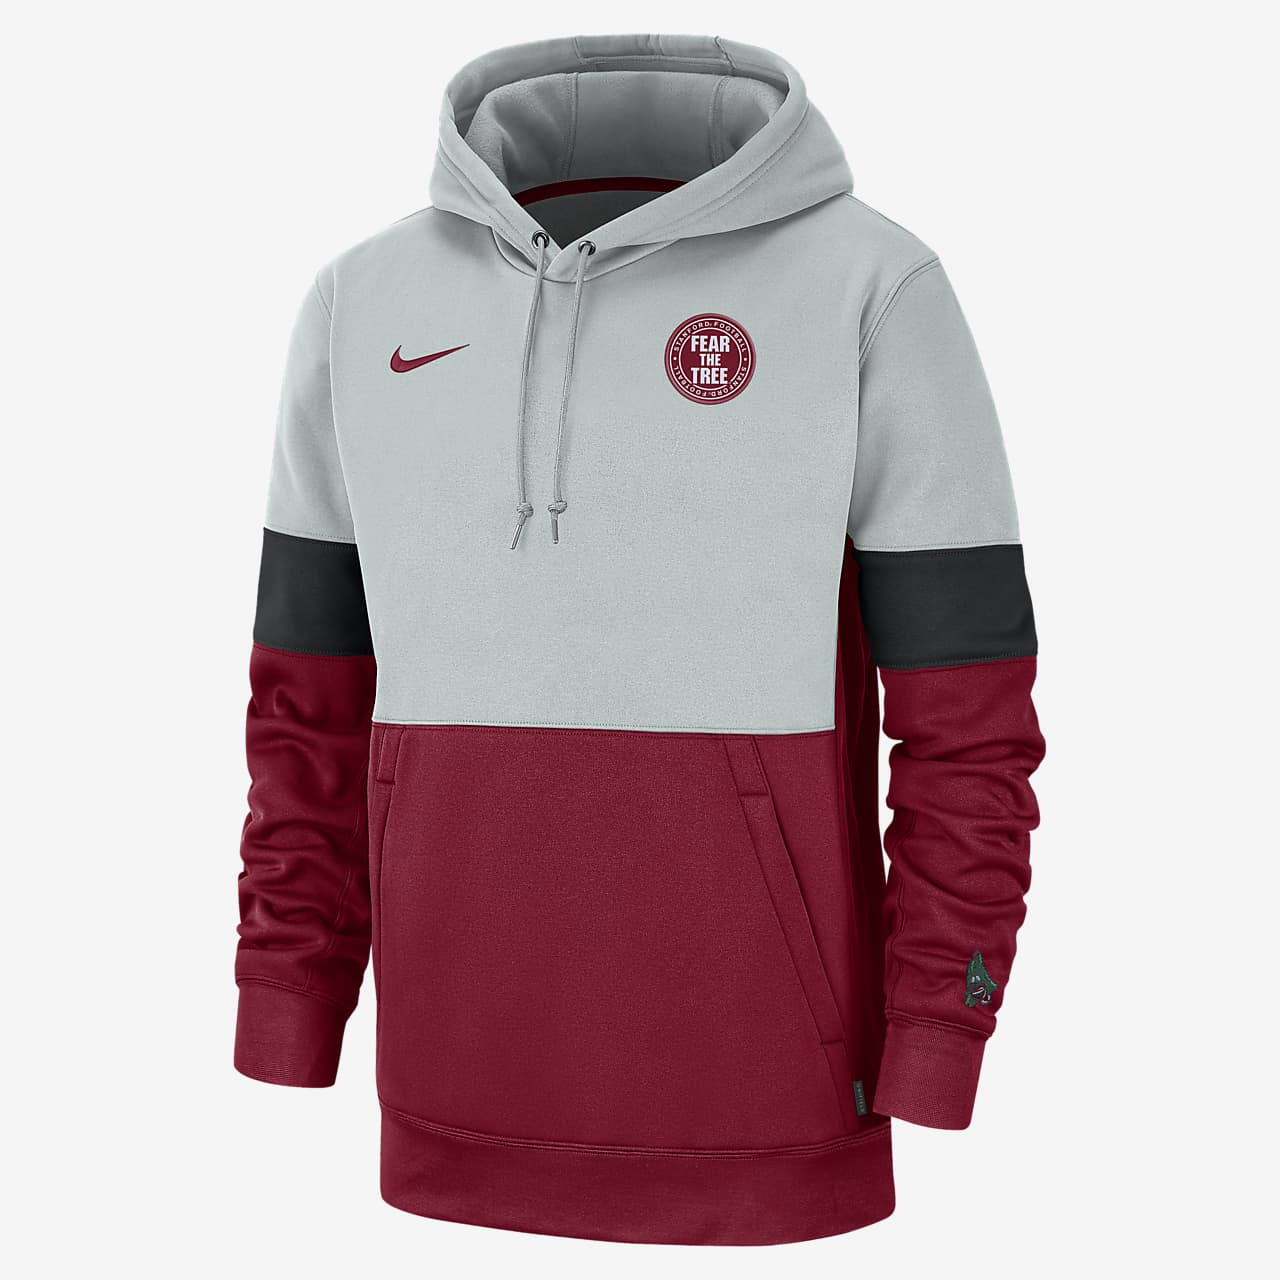 Nike College Therma (Stanford) Men's Hoodie